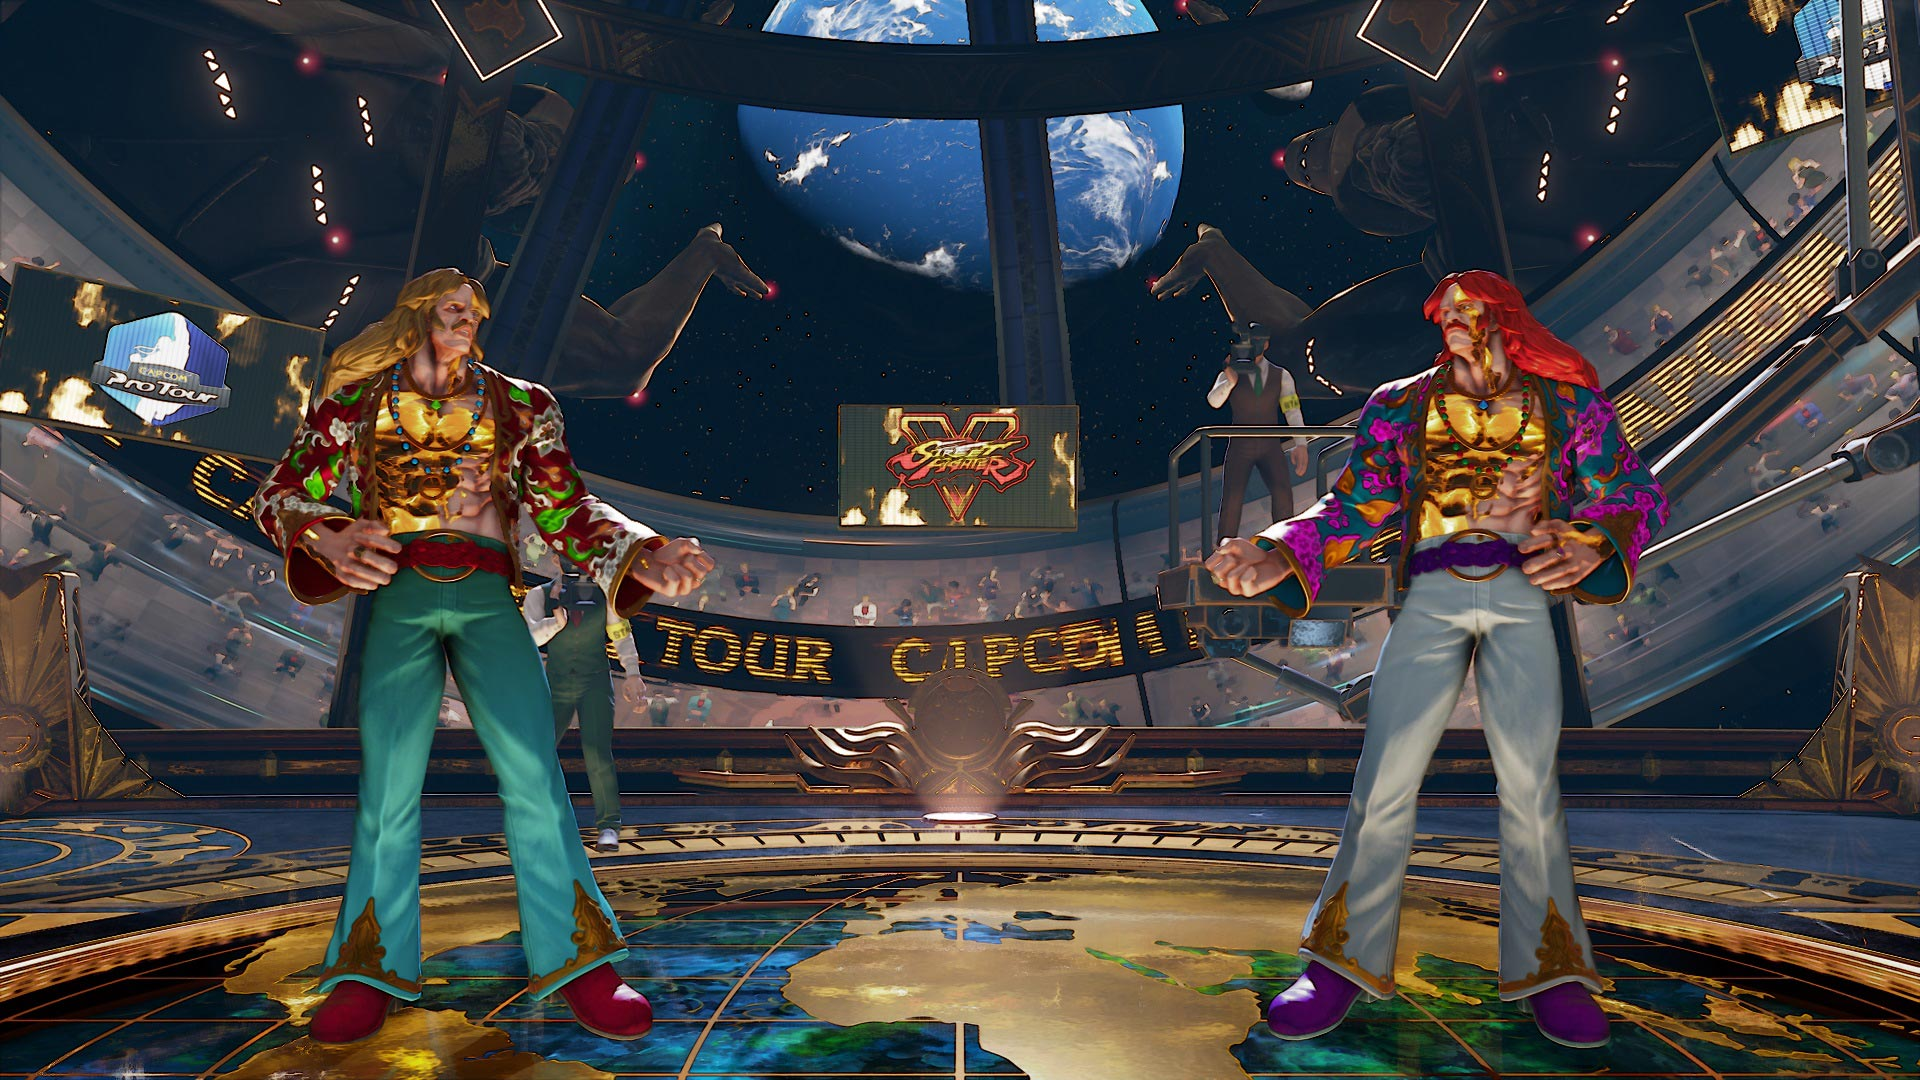 G CPT DLC costume colors and Easter egg 2 out of 5 image gallery